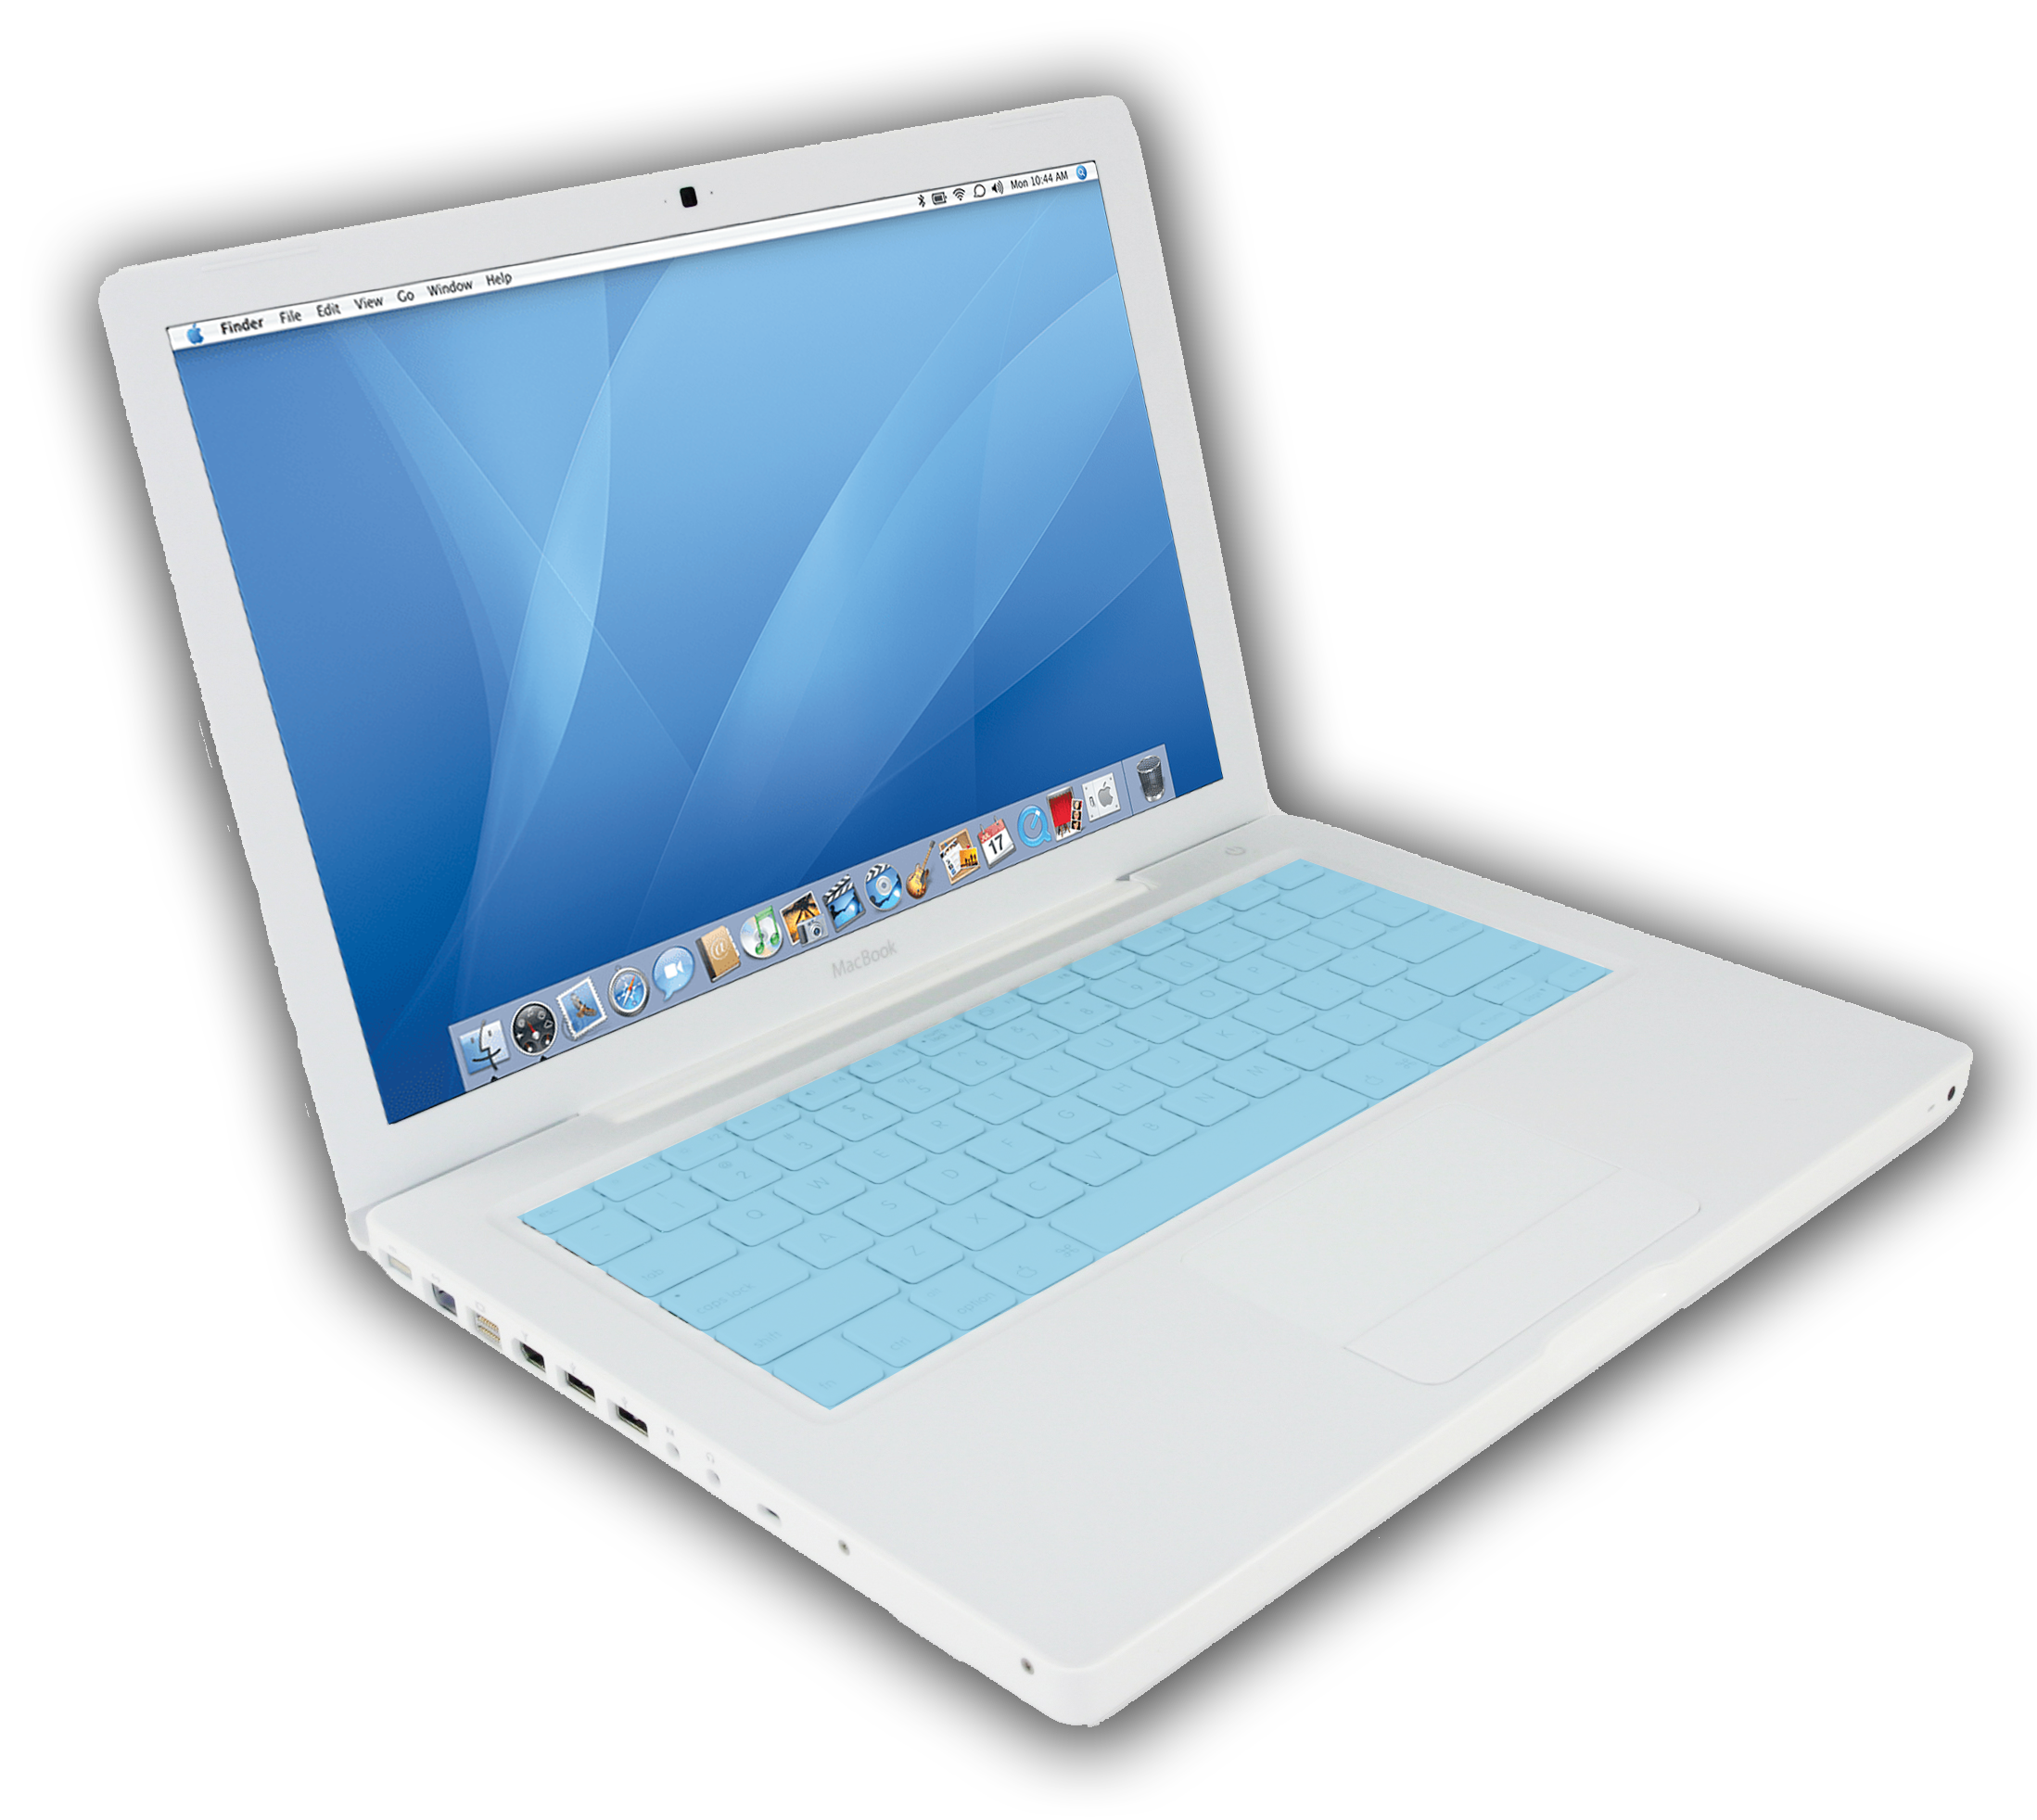 MacBook A1181 keyboard replacement. Phones Rescue Apple repair specialists Bournemouth Christchurch Poole